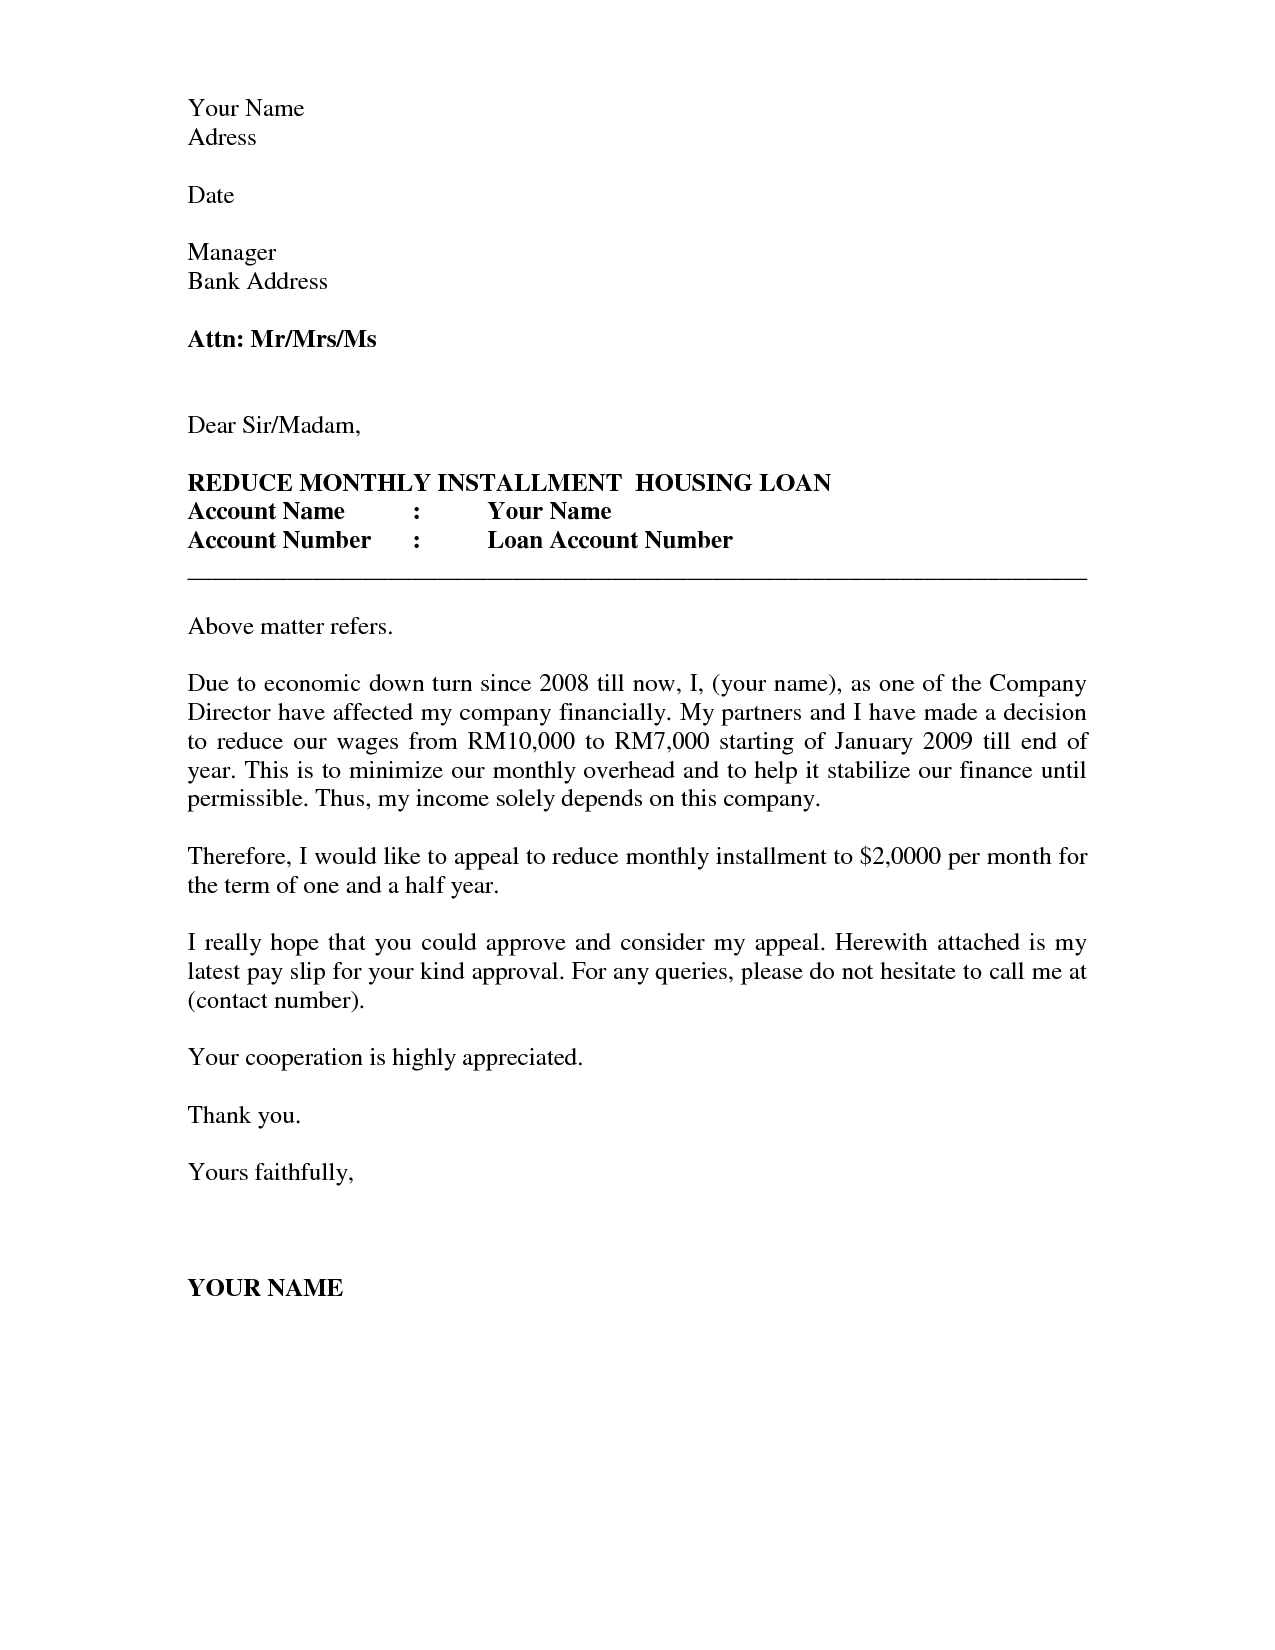 Business Appeal Letter A Letter Of Appeal Should Be Written In A Professional Business Letter Fo Business Letter Format Letter Format Sample Letter Templates